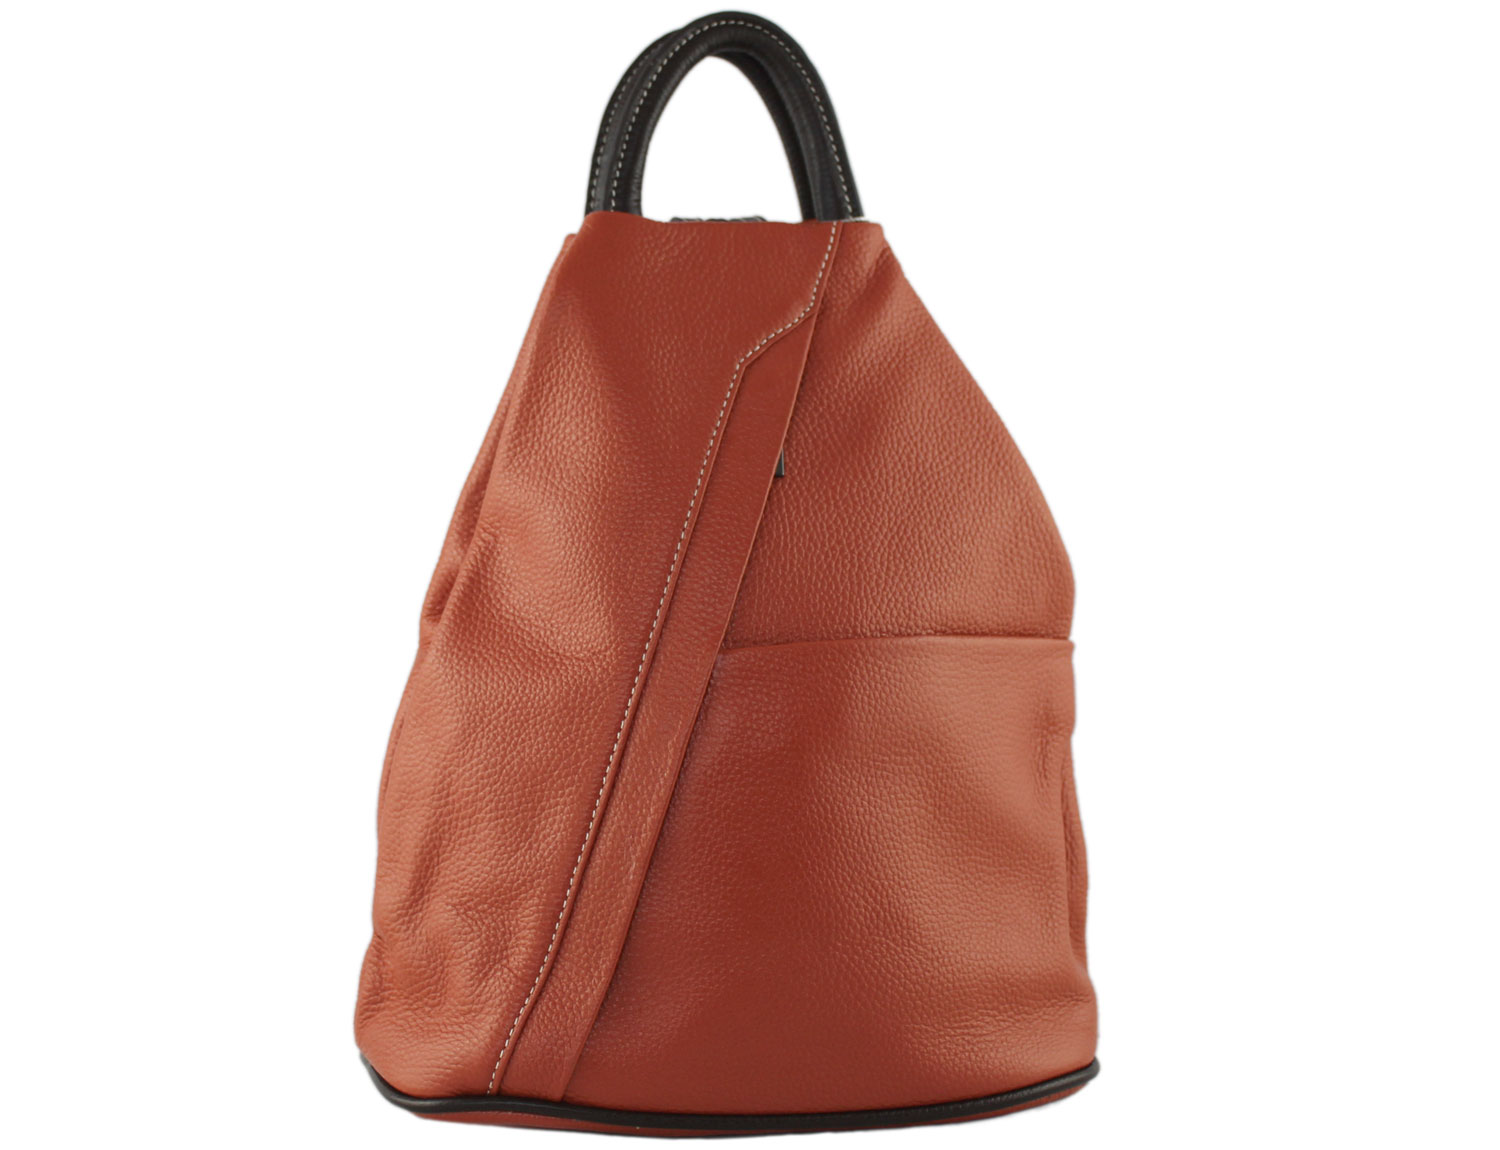 Tuscany Soft Leather Backpack in Brick Red With Brown Trim